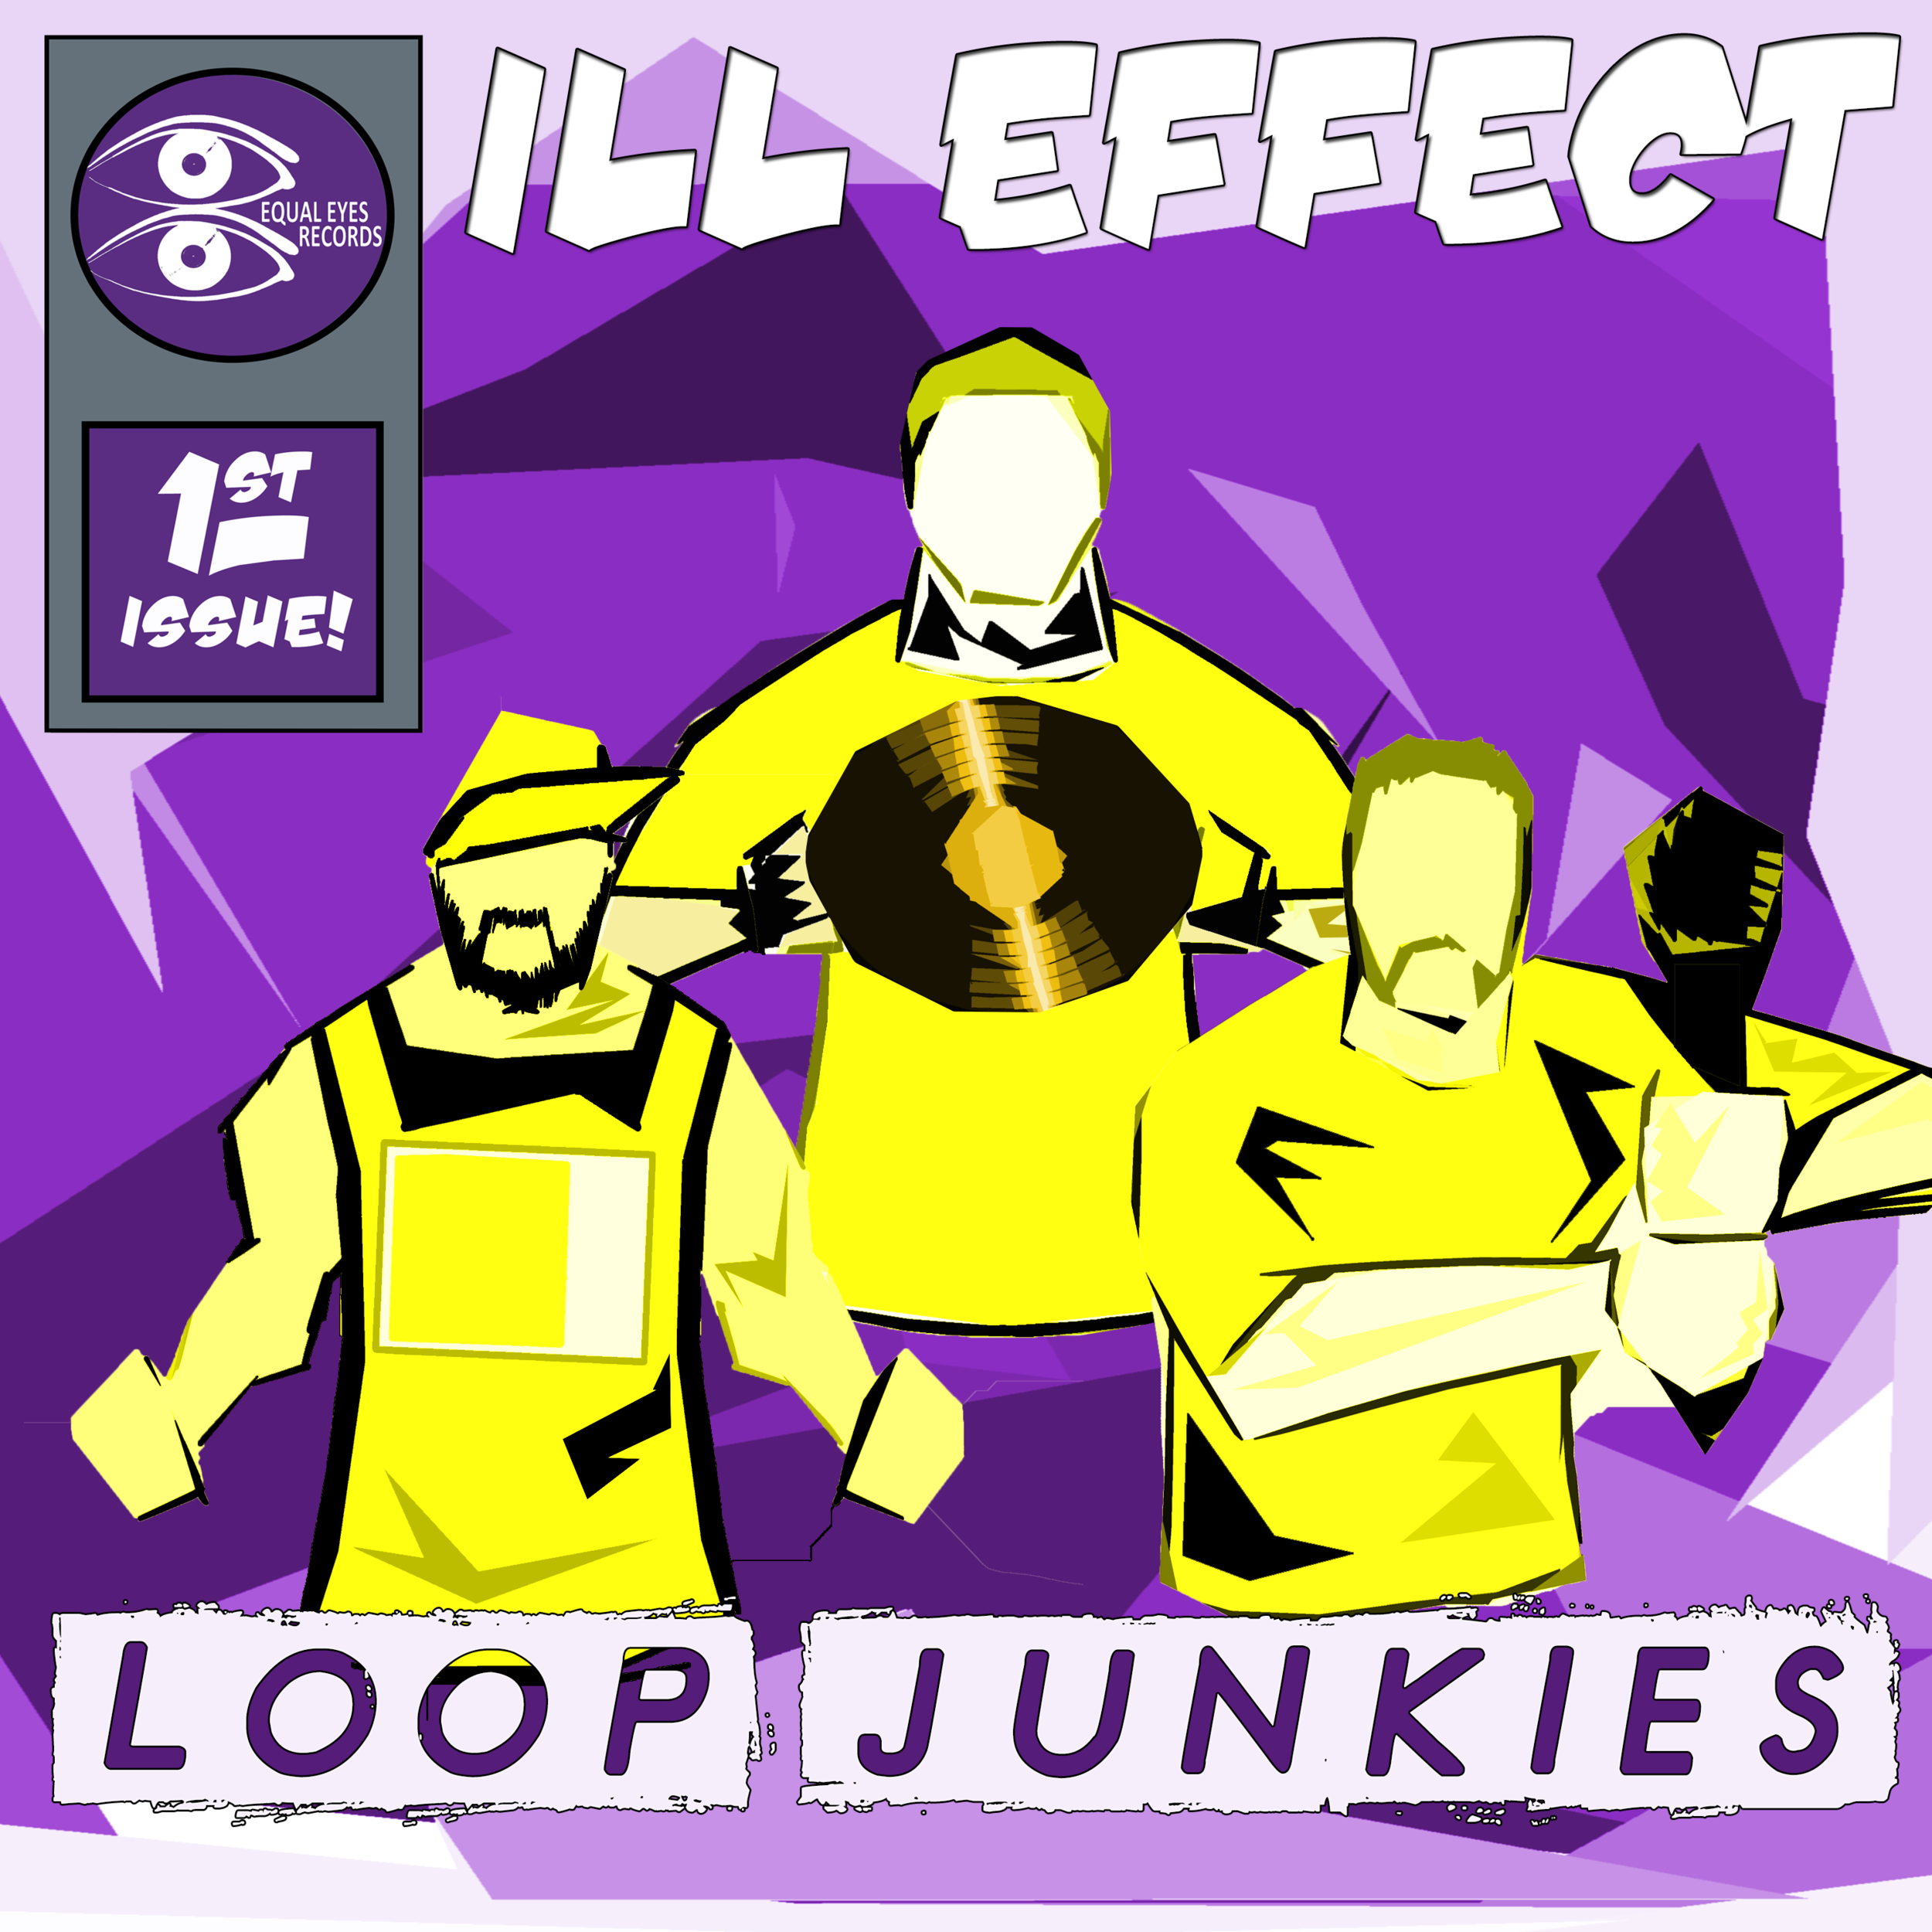 Loop Junkies